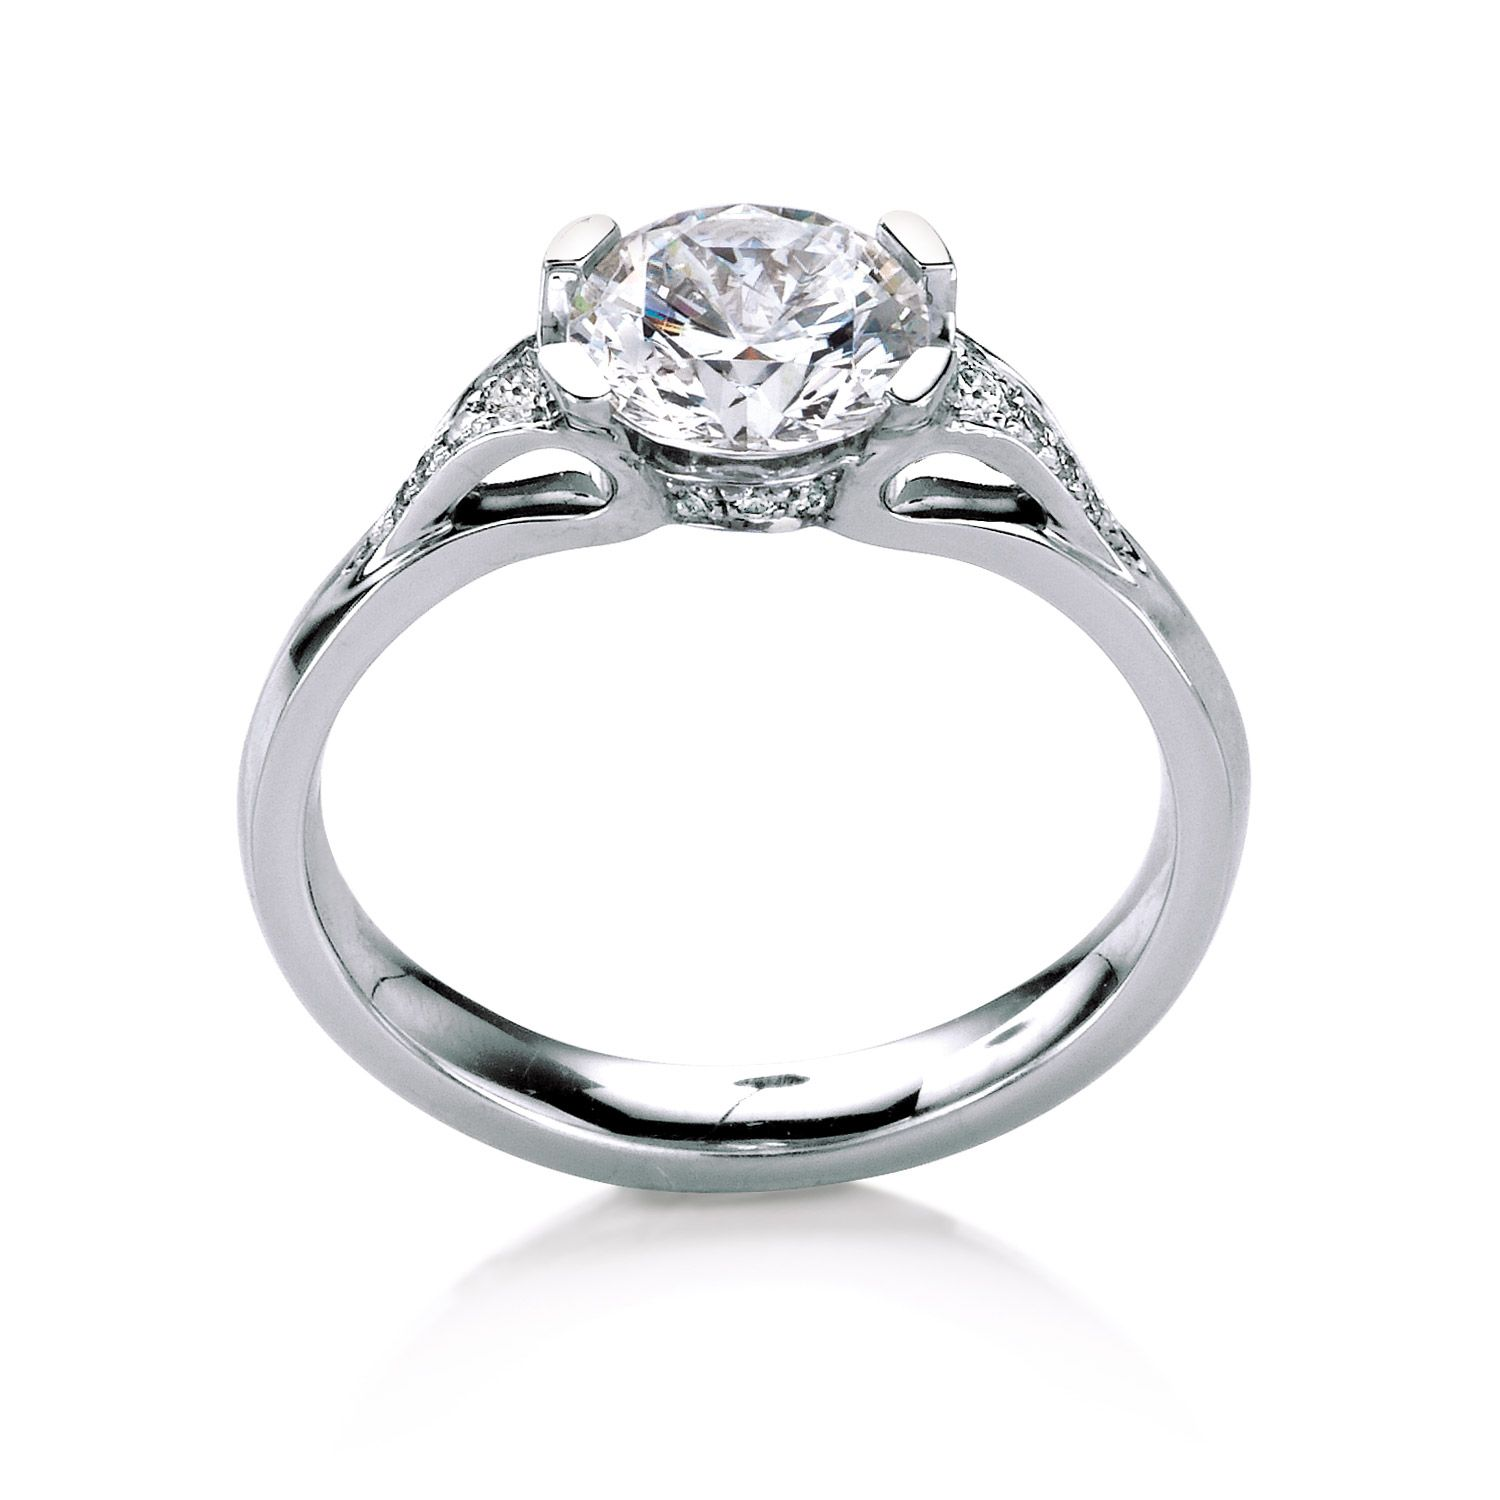 low profile wedding ring Eorsa Pav engagement ring by MaeVona Round brilliant cut solitaire Graceful low